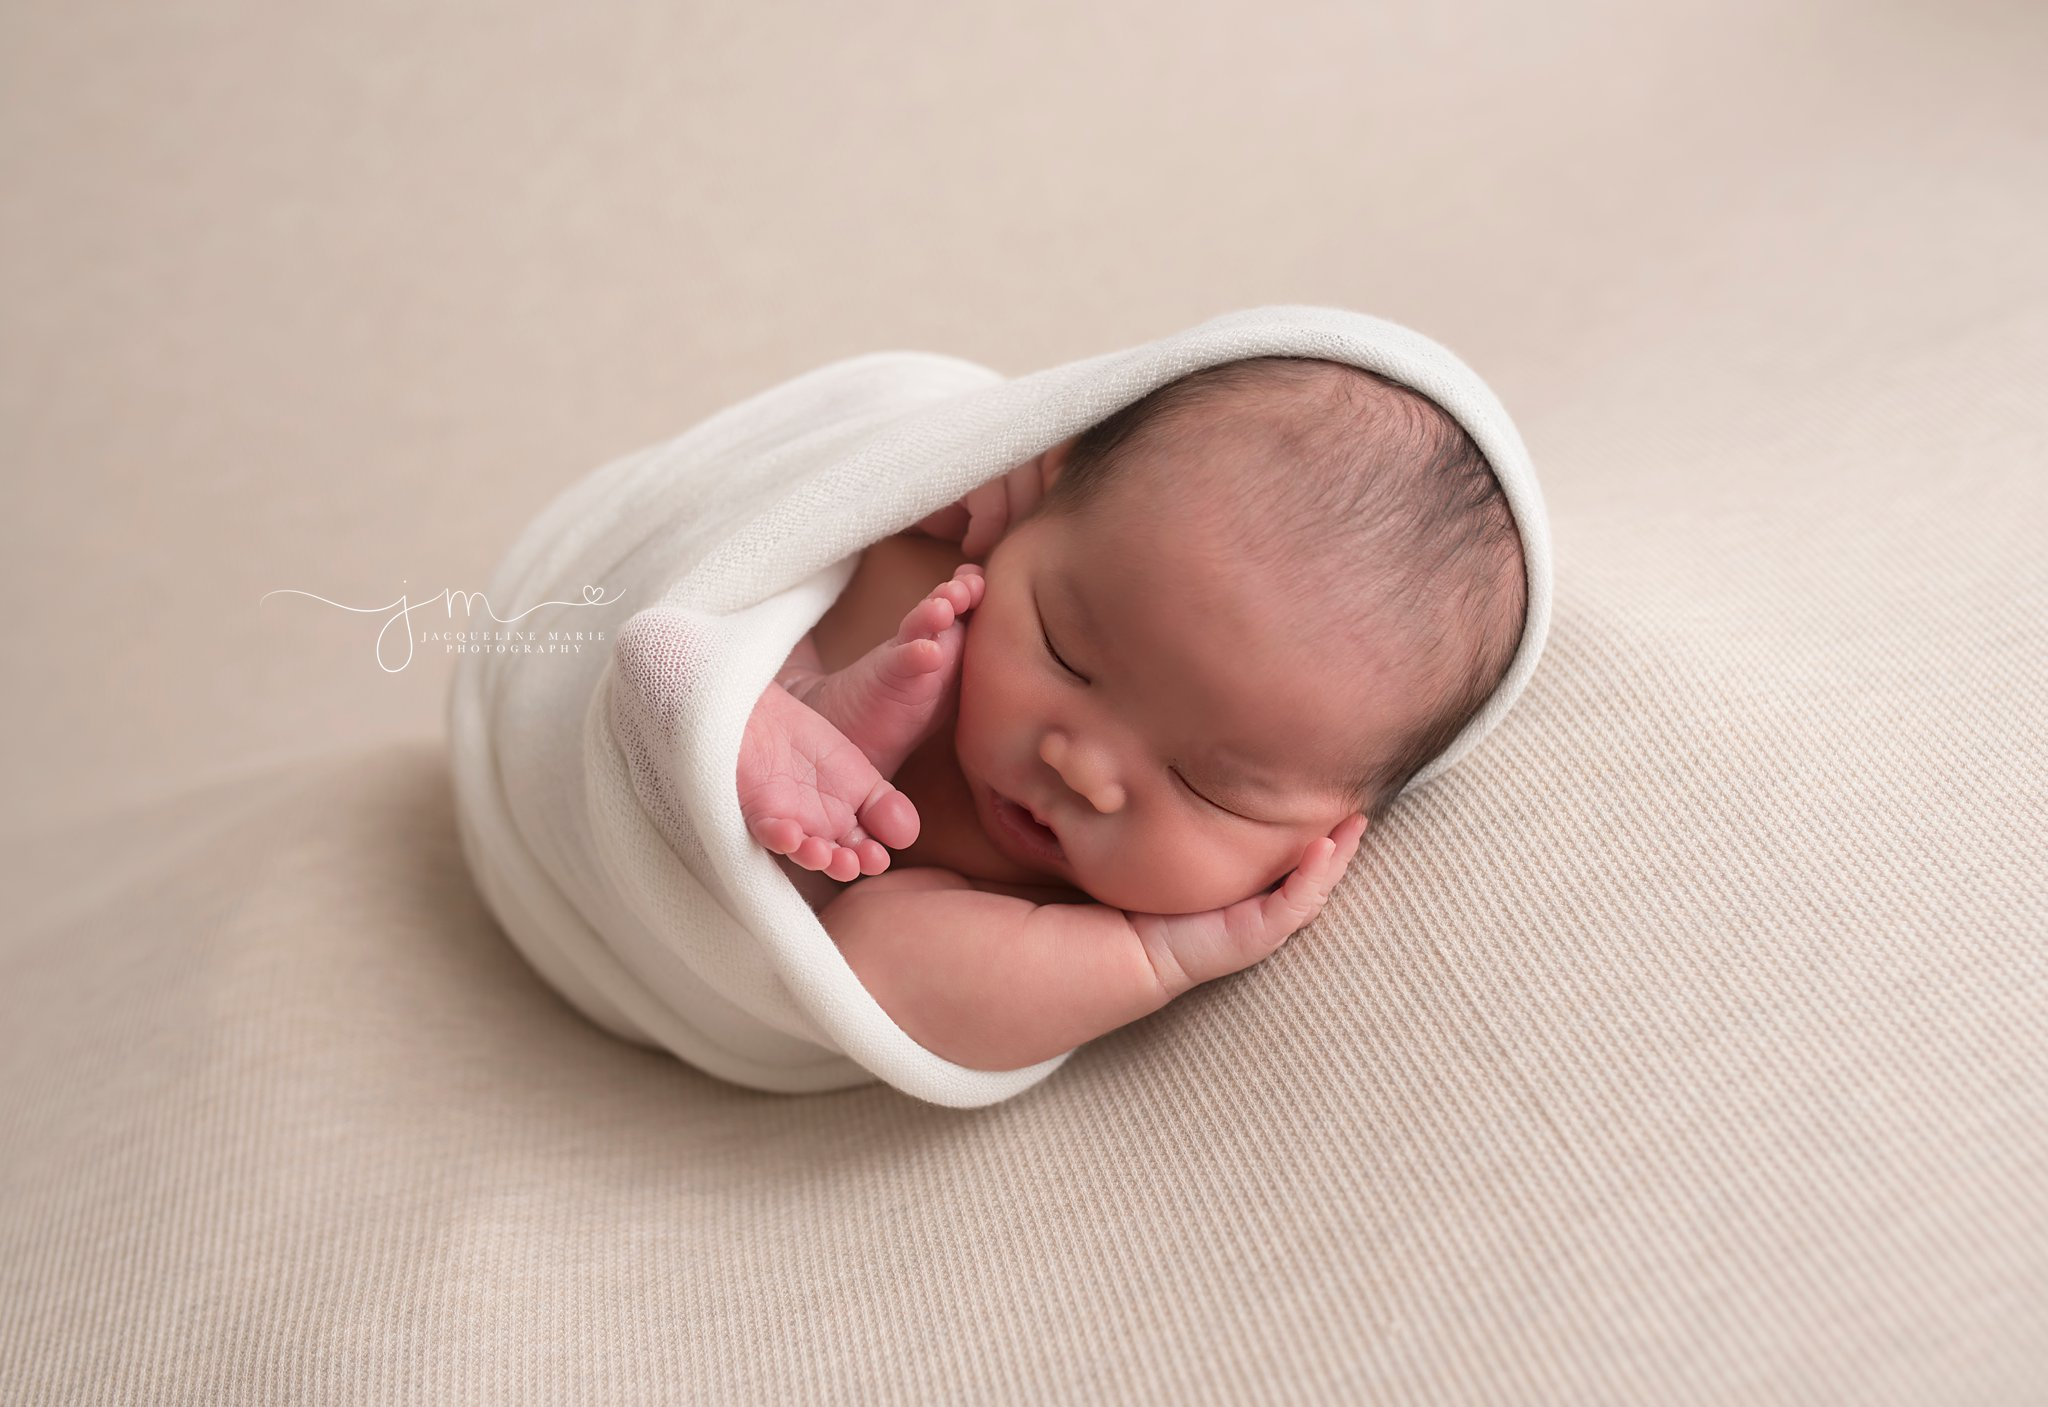 Jacqueline Marie photography studio features newborn swaddled in cream wrap for 9 day old session in Columbus Ohio